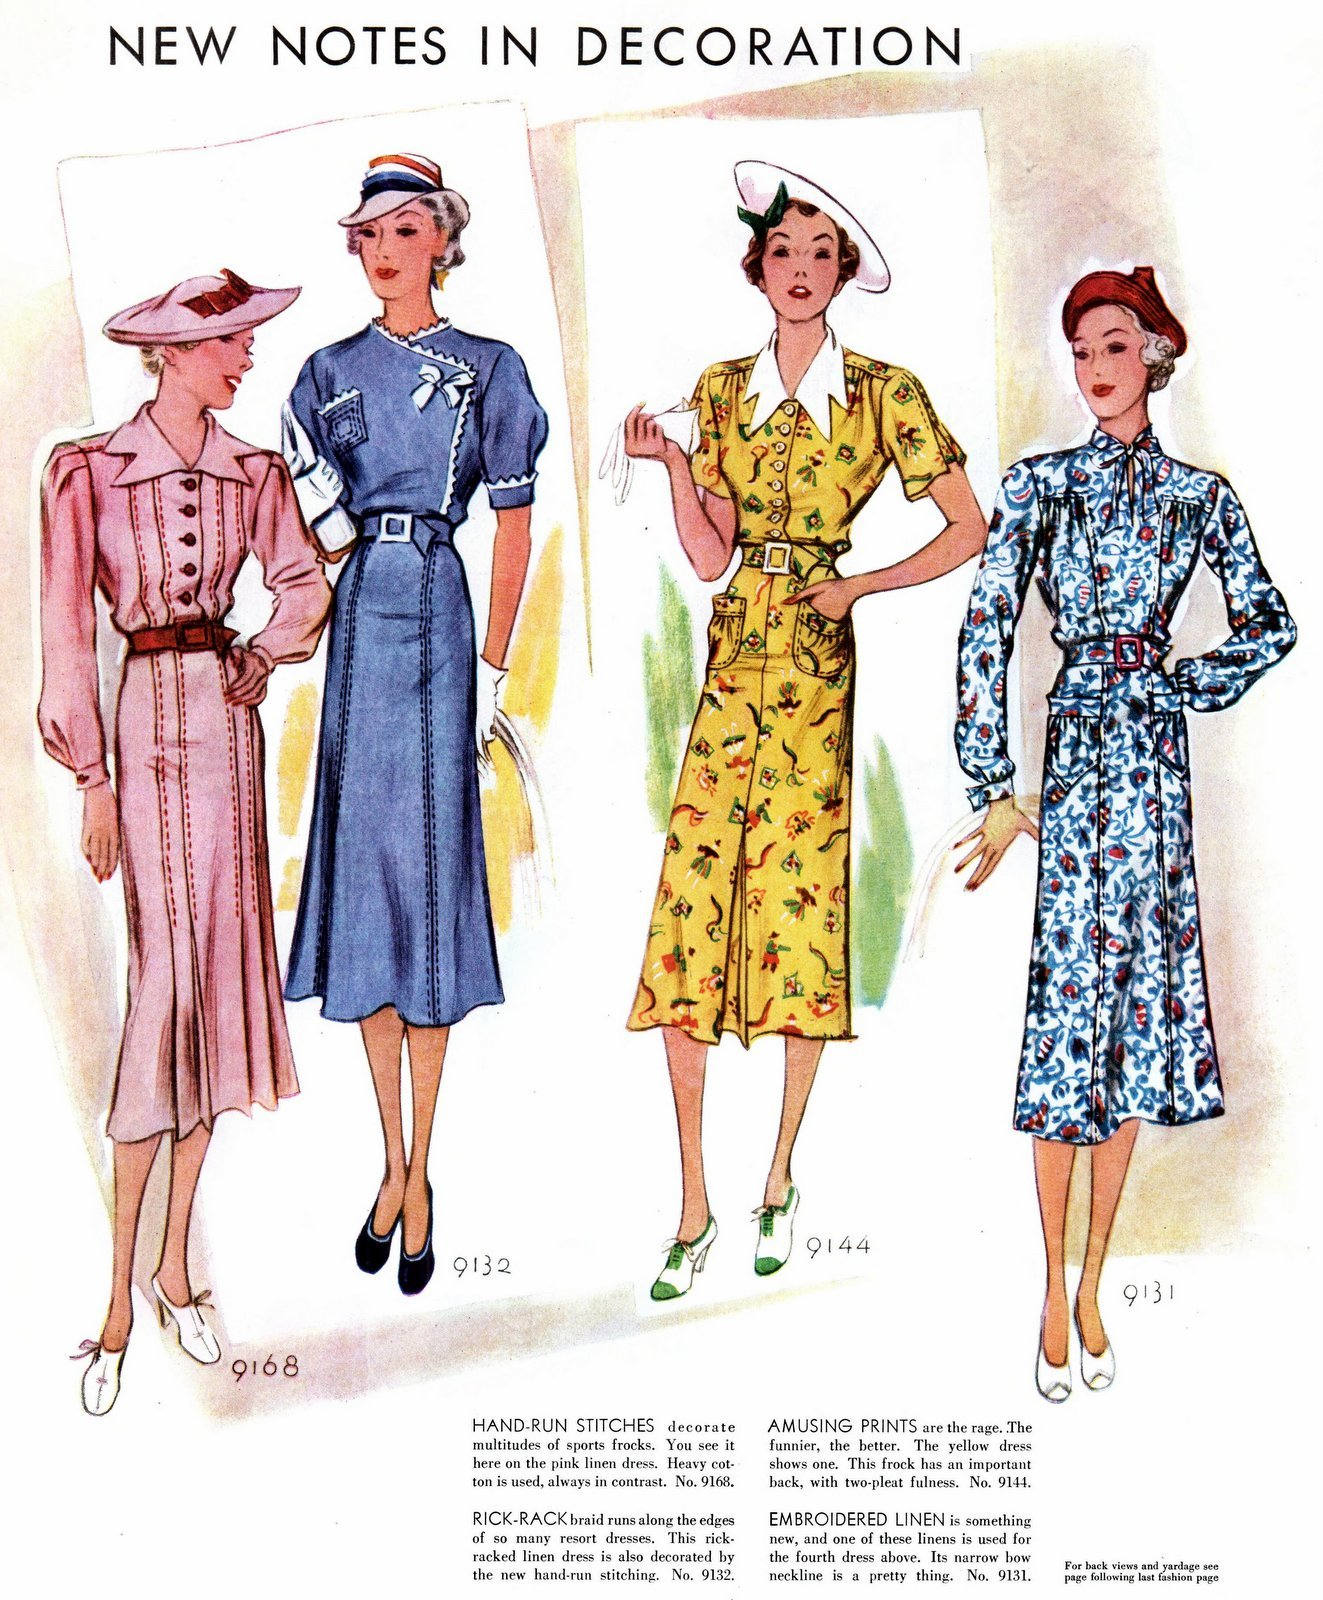 Dress fashions for women from 1937